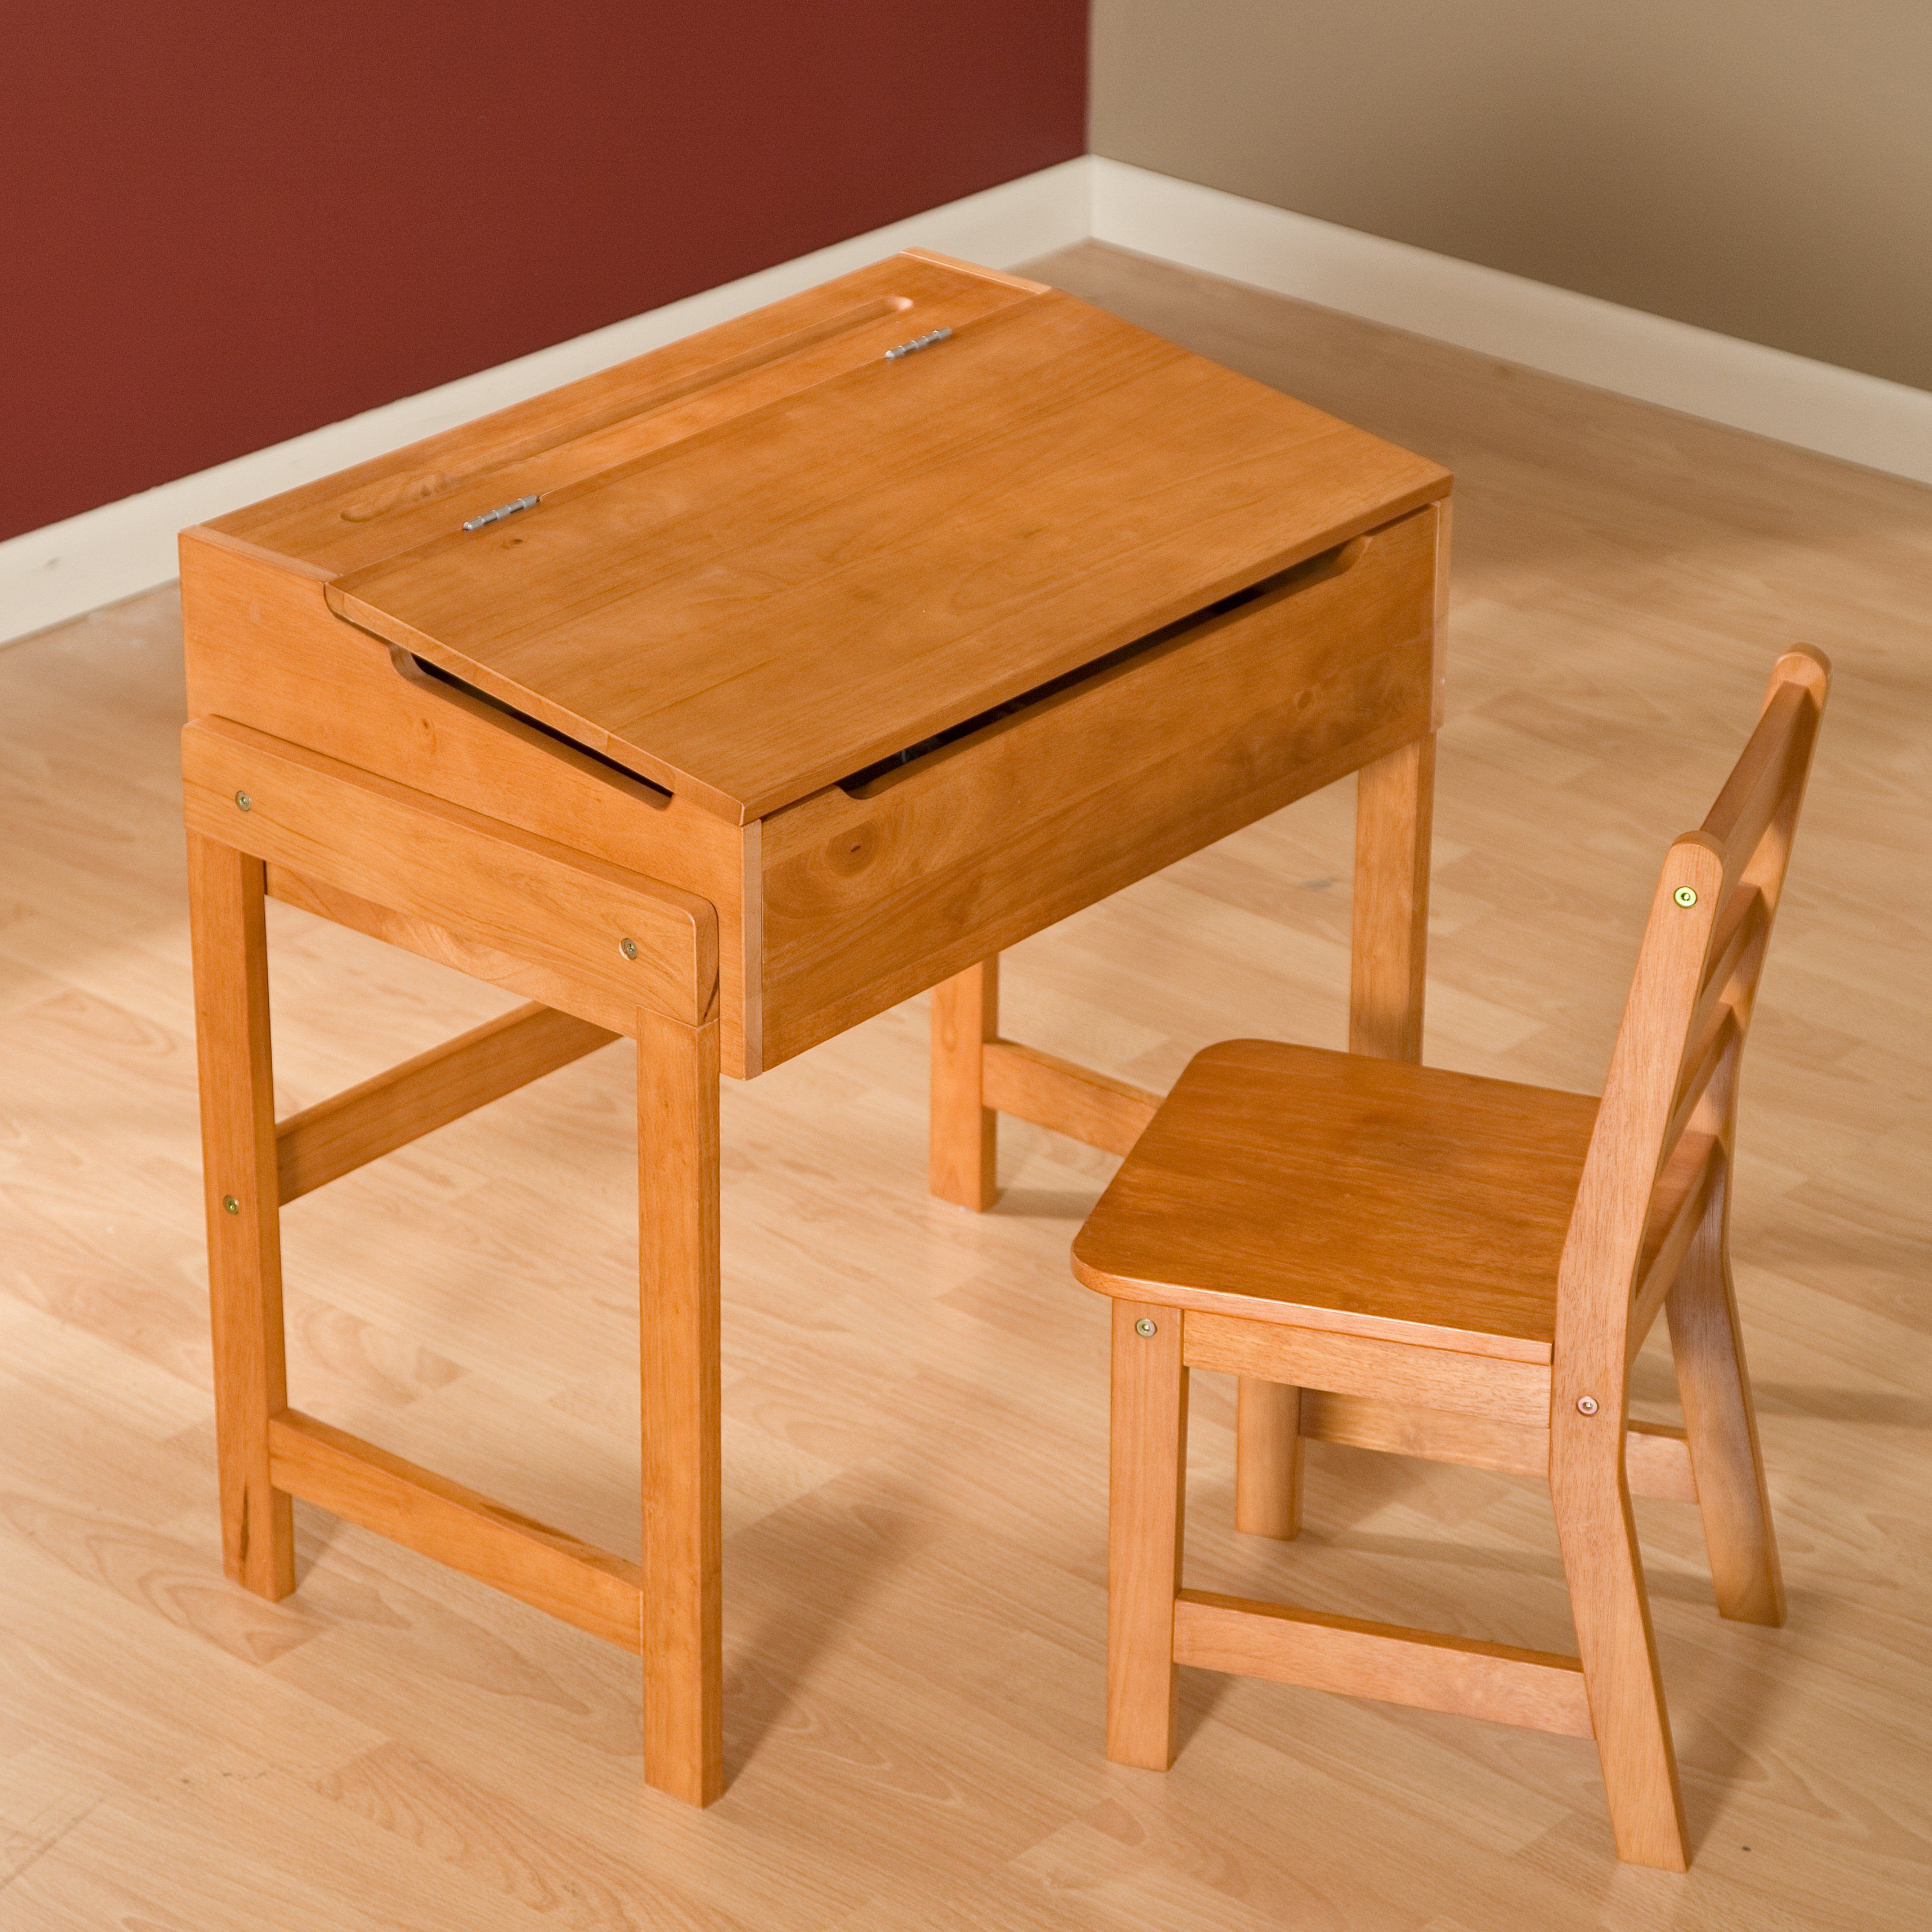 Kids Wooden Desk Schoolhouse Desk And Chair Set Desk And Chair Set Kids Desk Chair Kids Wooden Desk